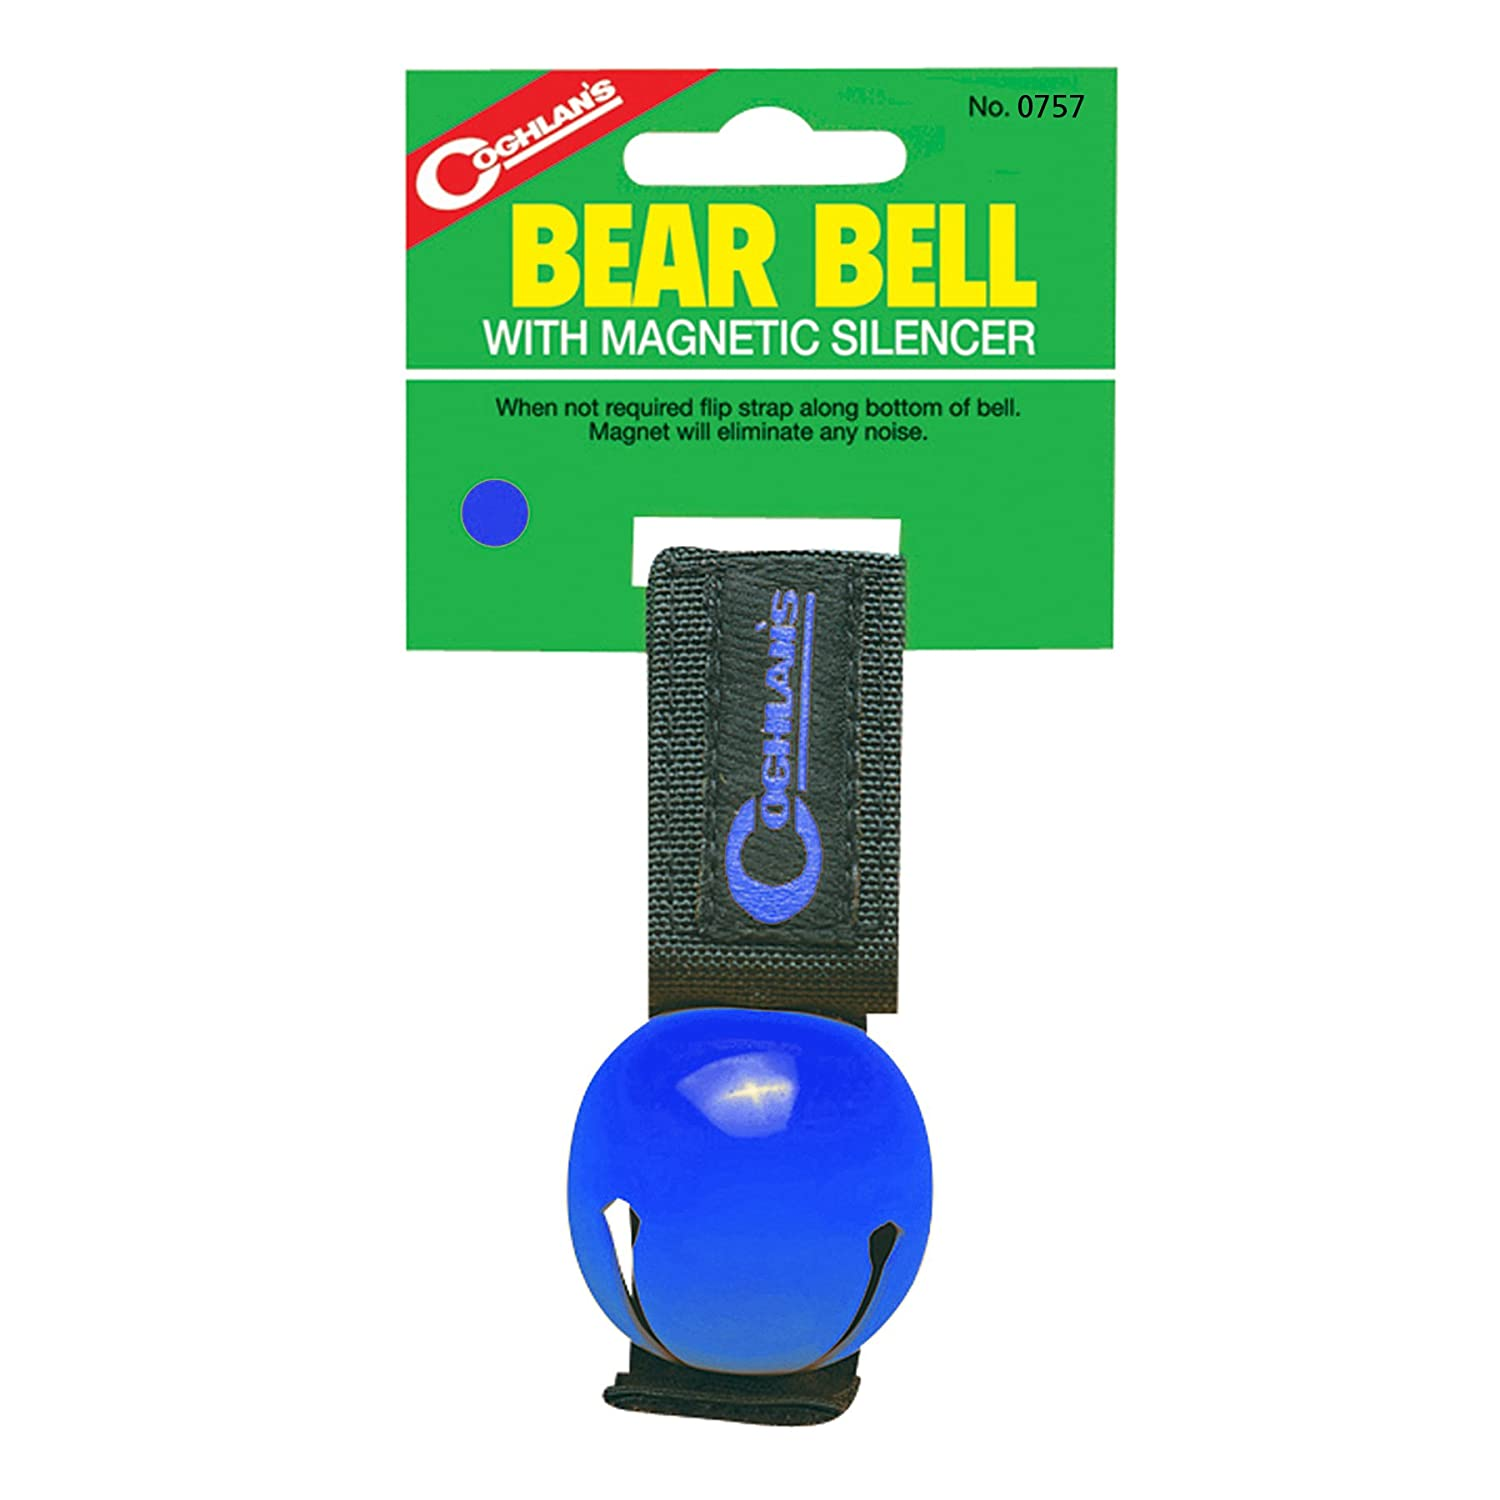 Amazon.com   Coghlan s Bear Bell with Magnetic Silencer 4e47b829c